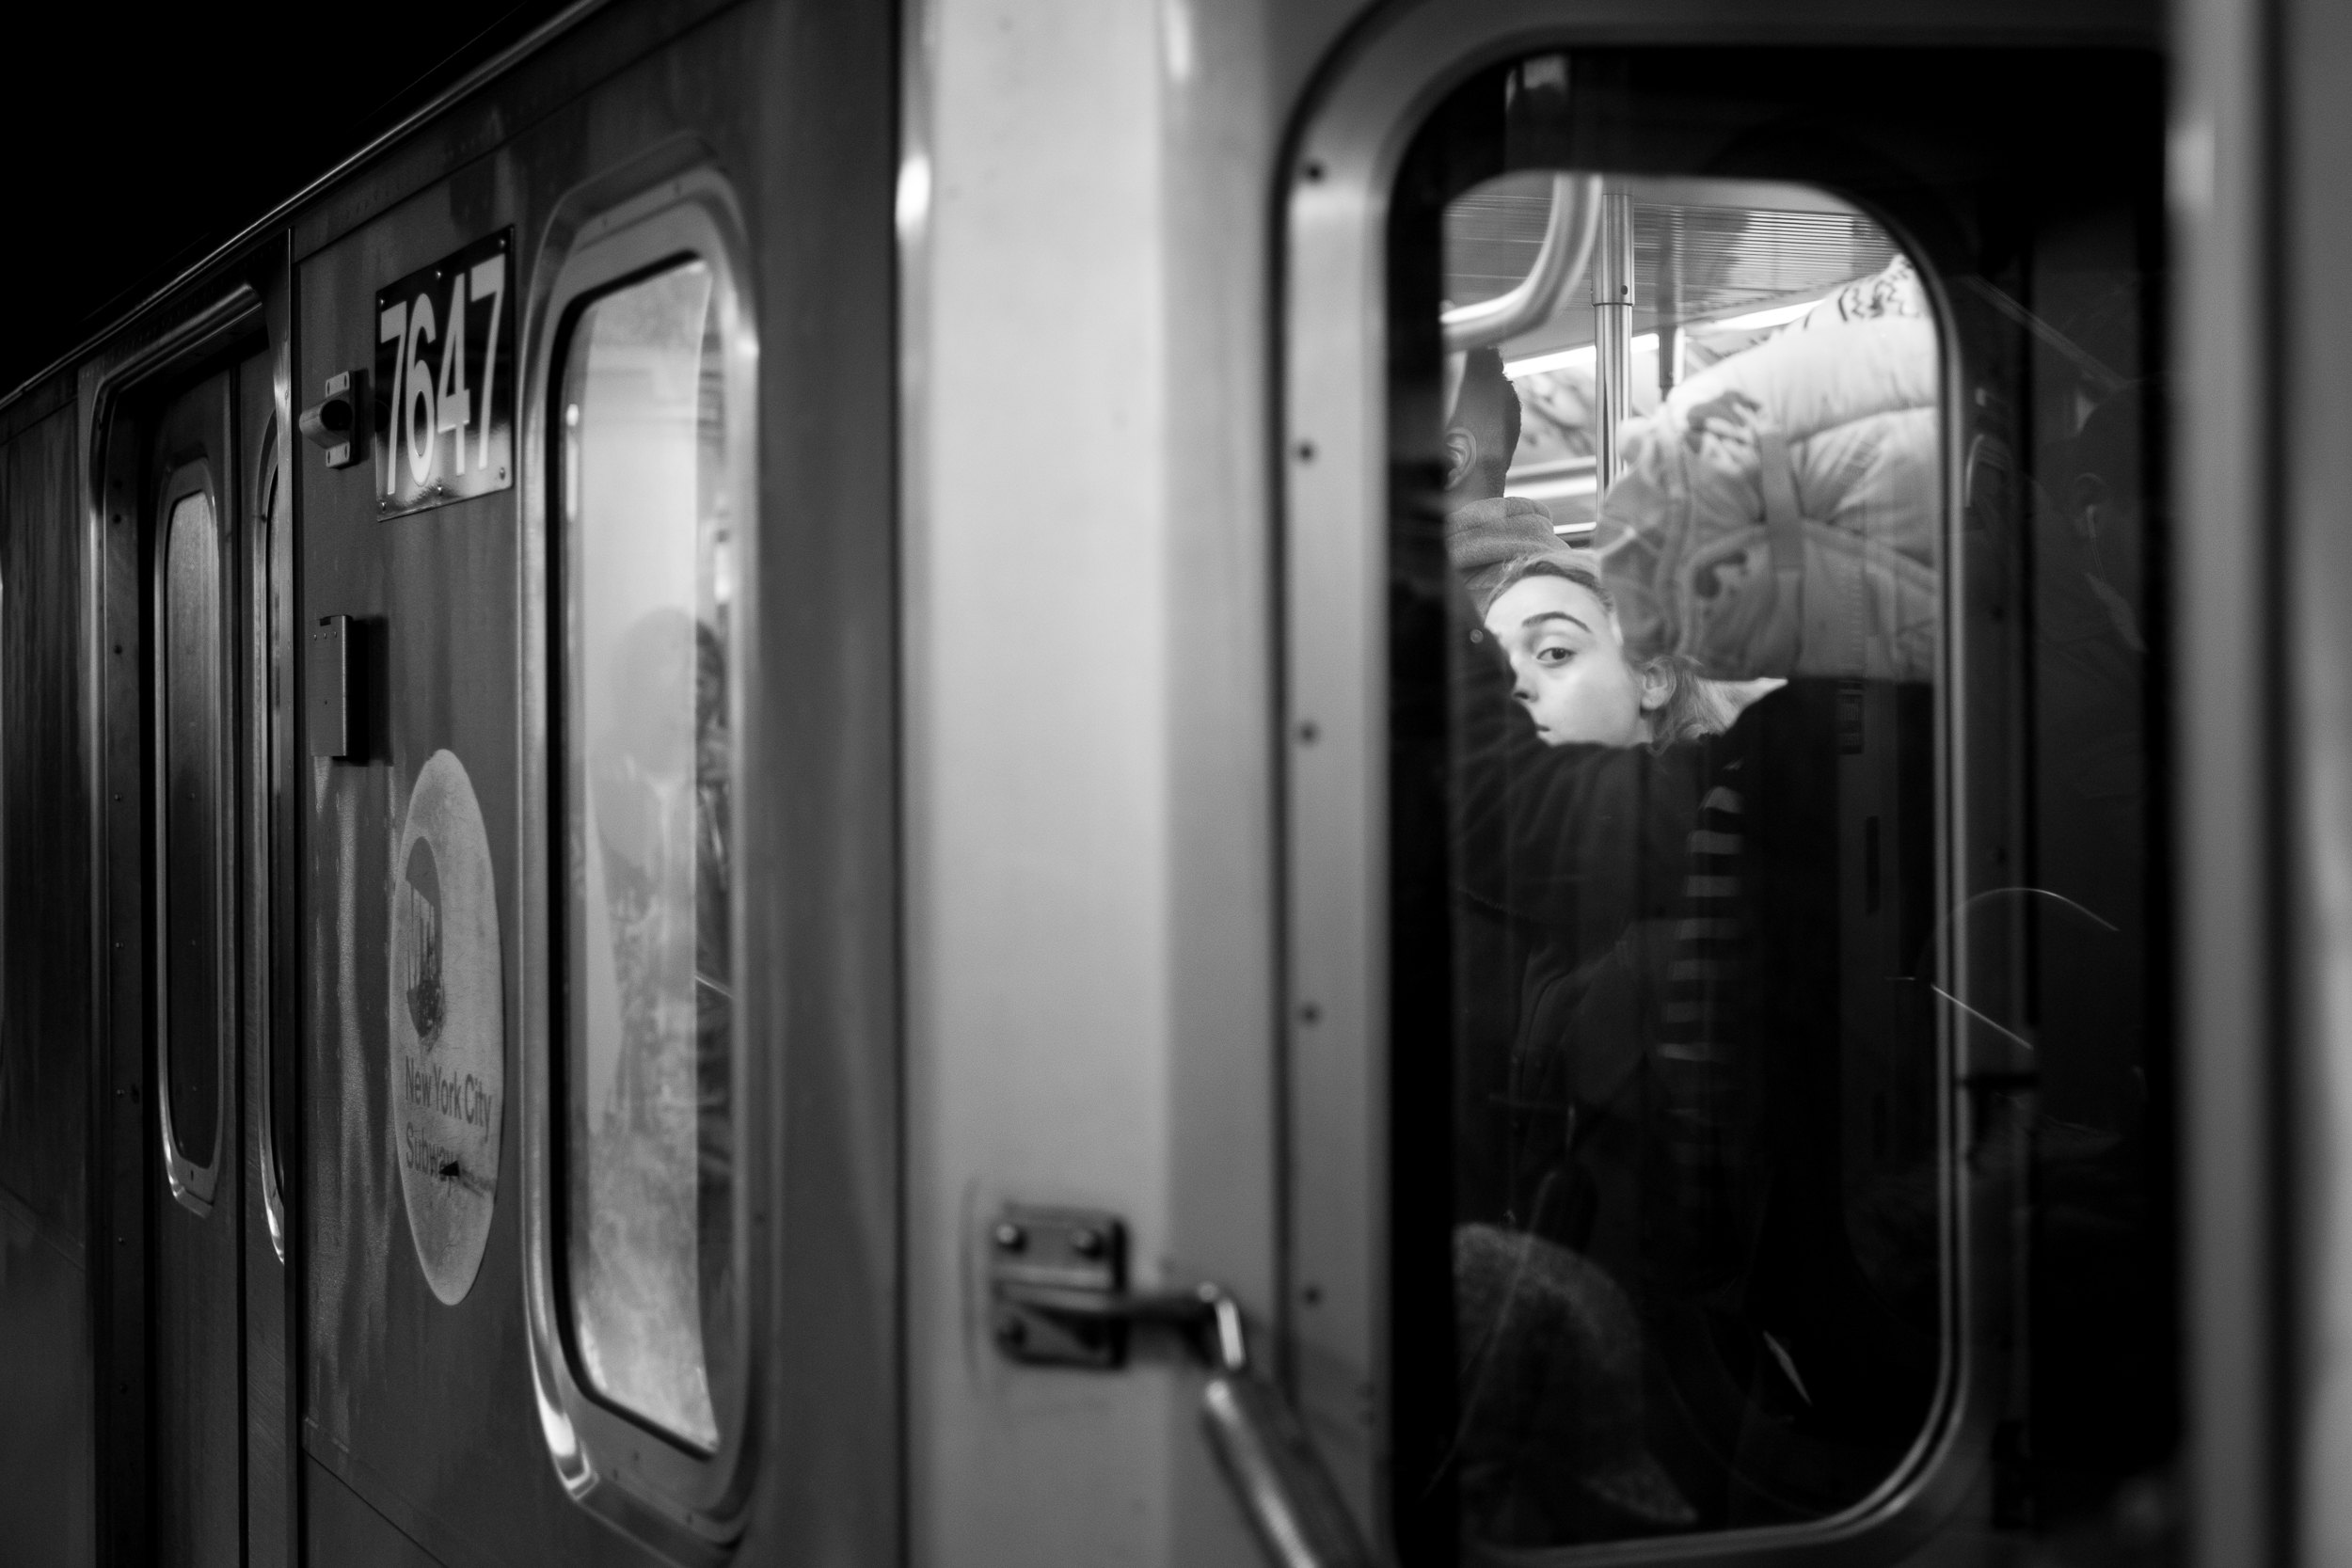 The Eye.  A passenger looks out of the window on an express train to Wall Street.  Leica M10 with 90mm Summicron f/2.